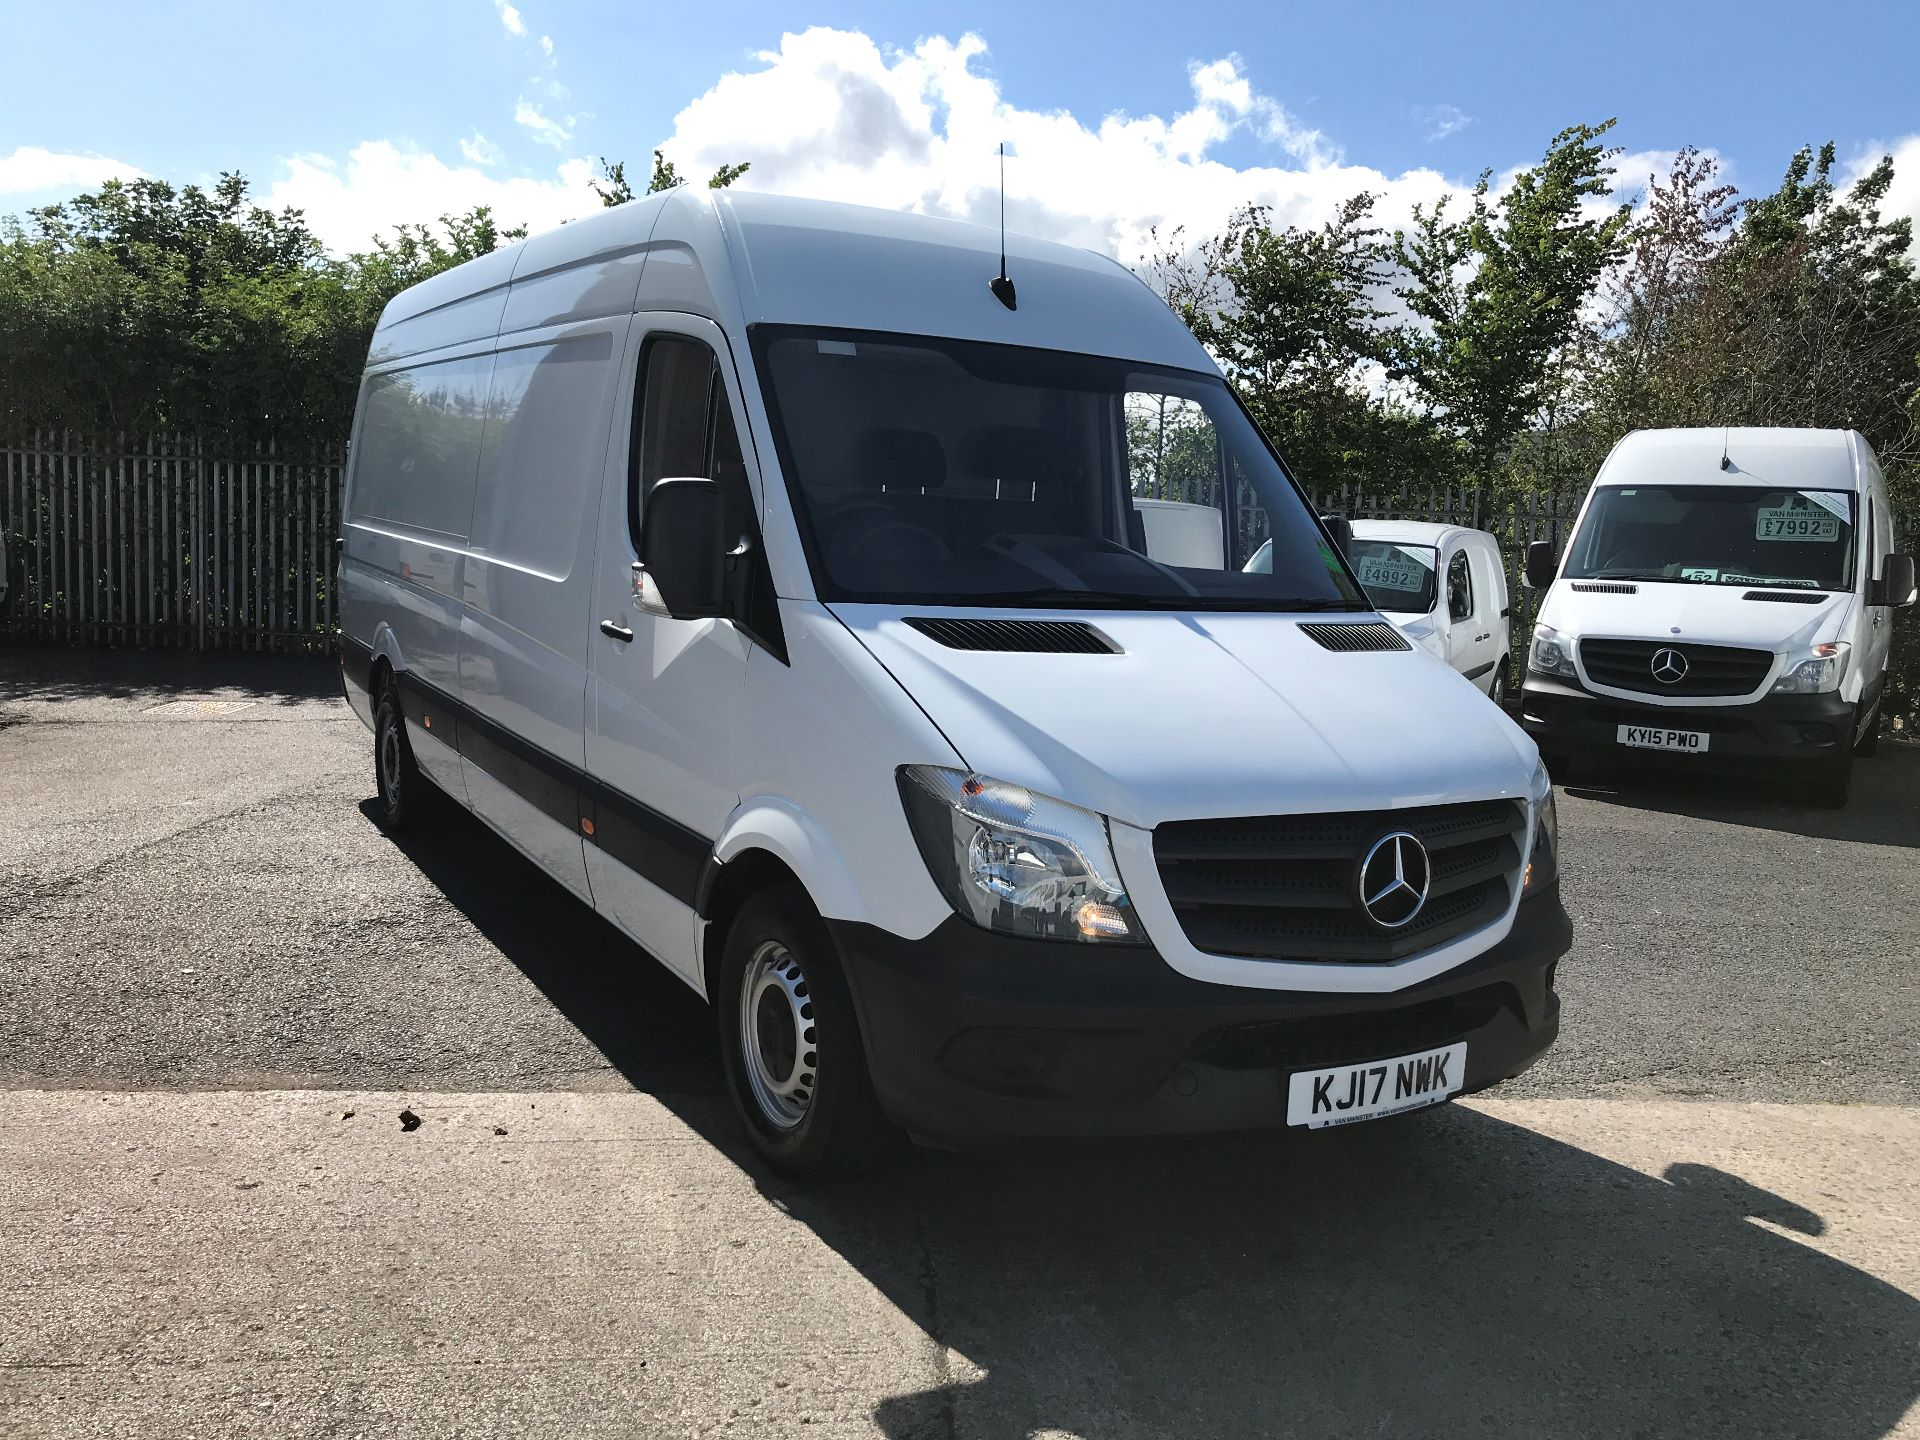 2017 Mercedes-Benz Sprinter 314CDI LWB HIGH ROOF 140PS EURO 6 (KJ17NWK)